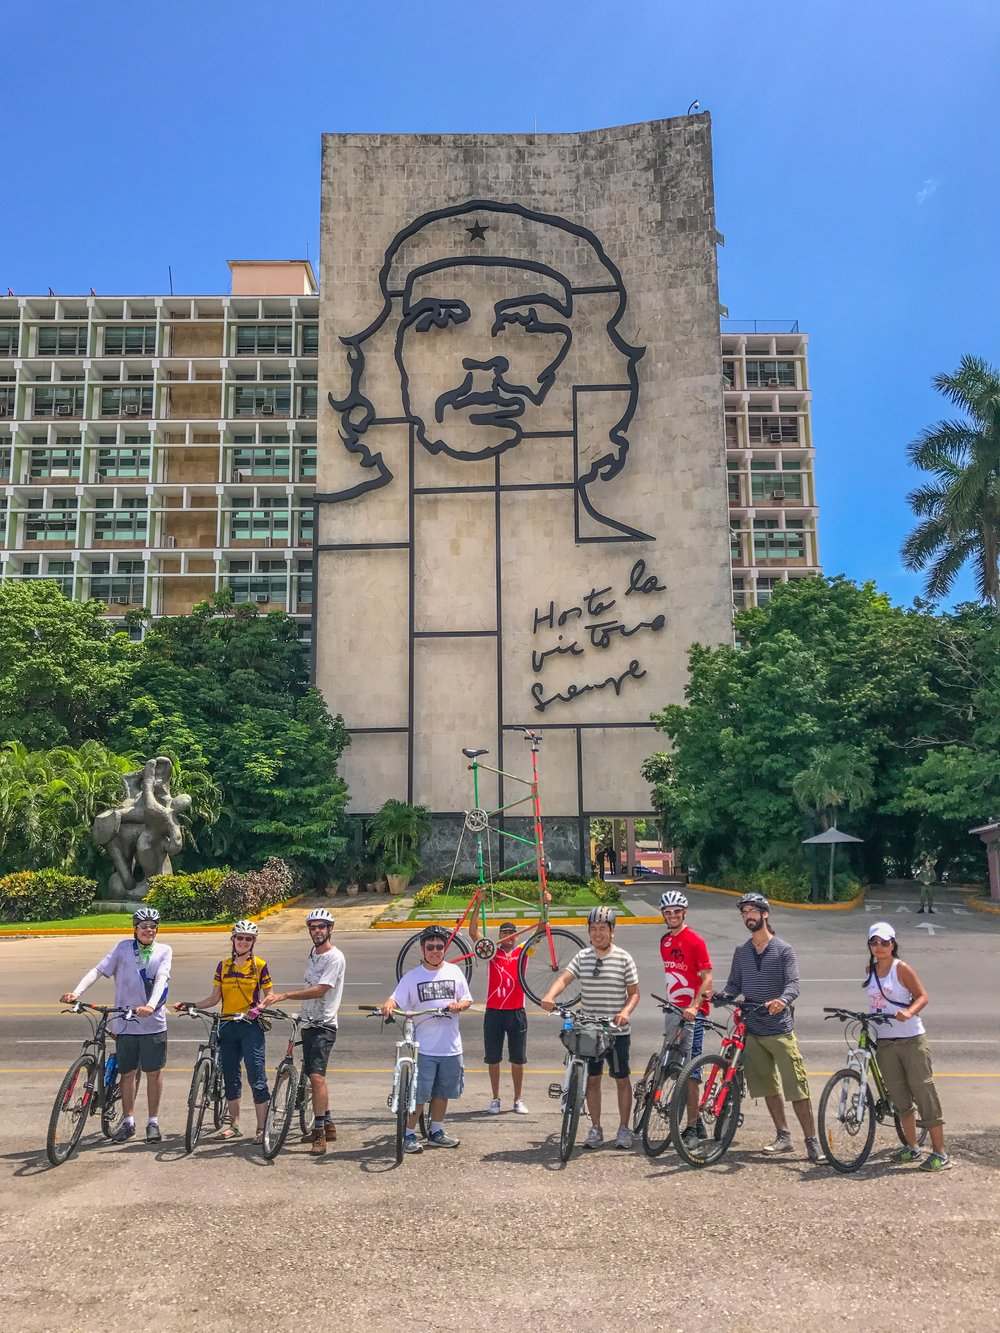 One of my group tours to Havana